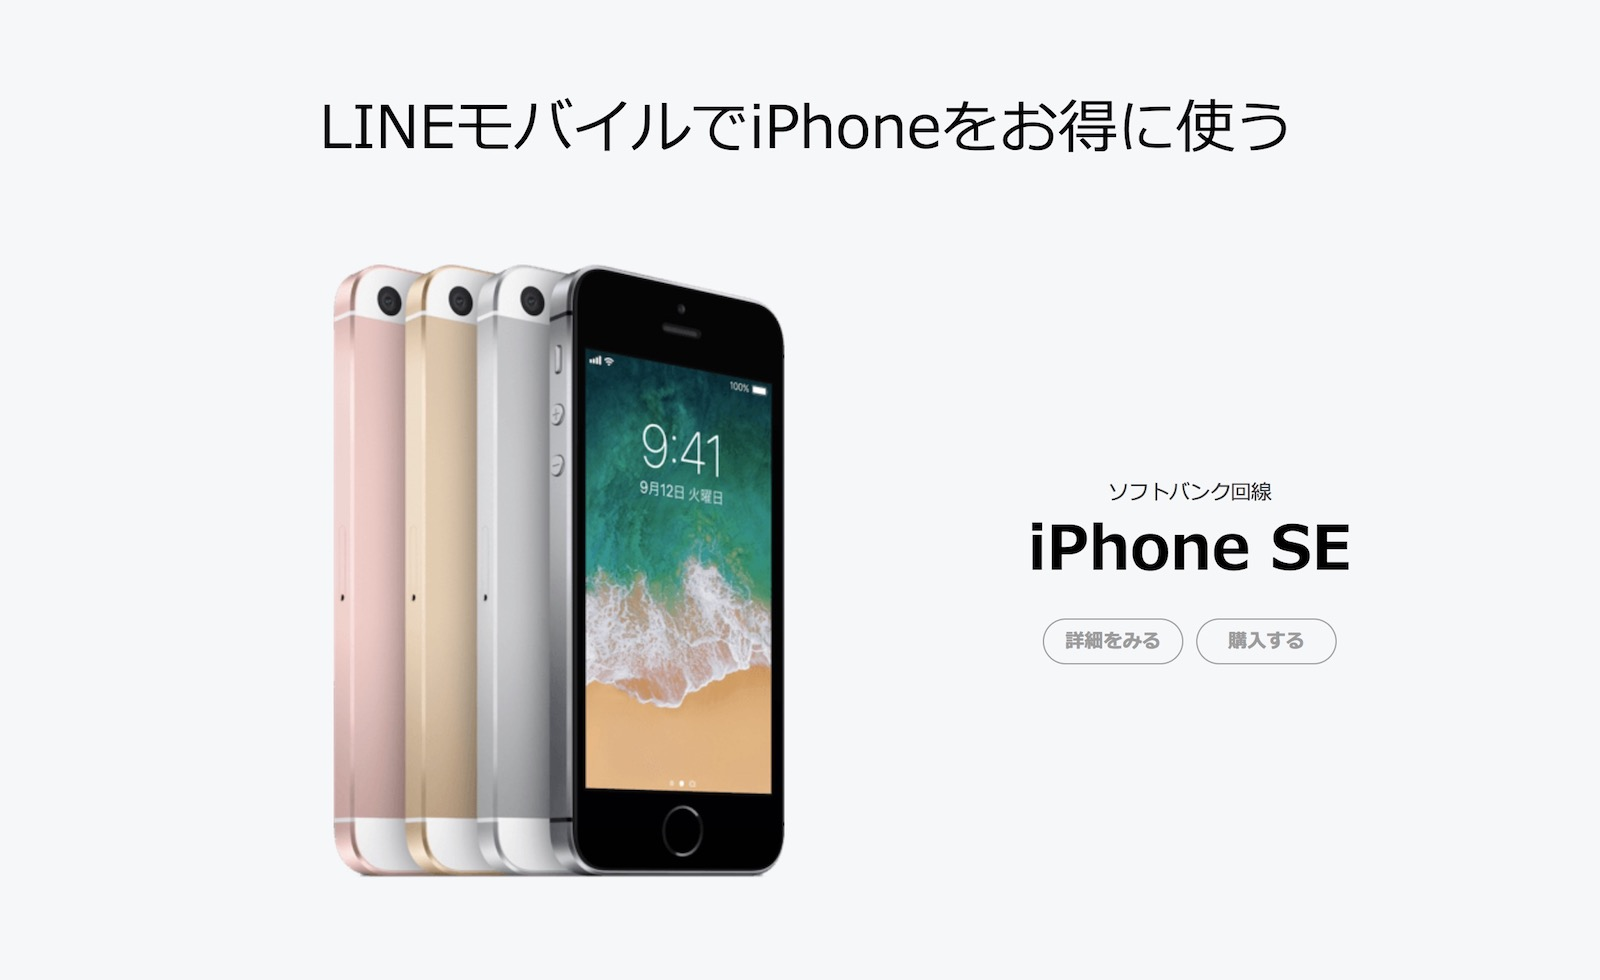 LINE Mobile iPhone SE